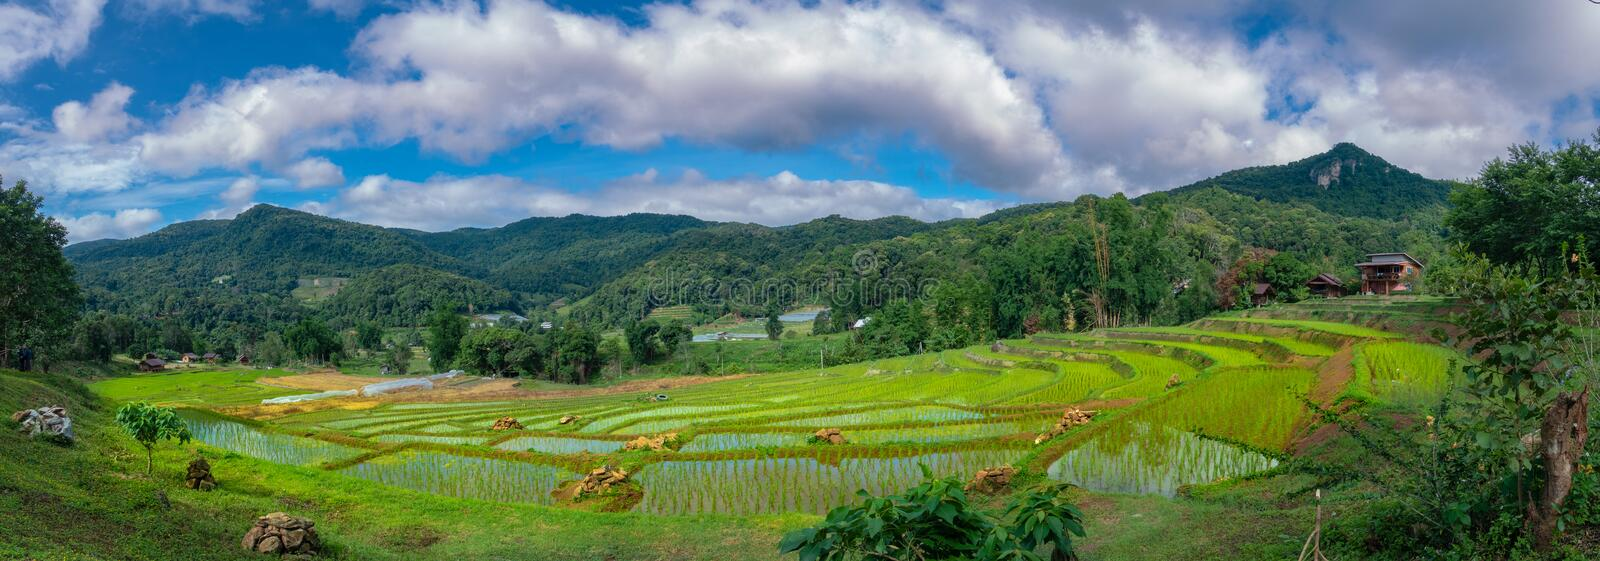 Panoramic view of rice terraces at Doi Inthanon national park, Chiang Mai, Thailand. stock image